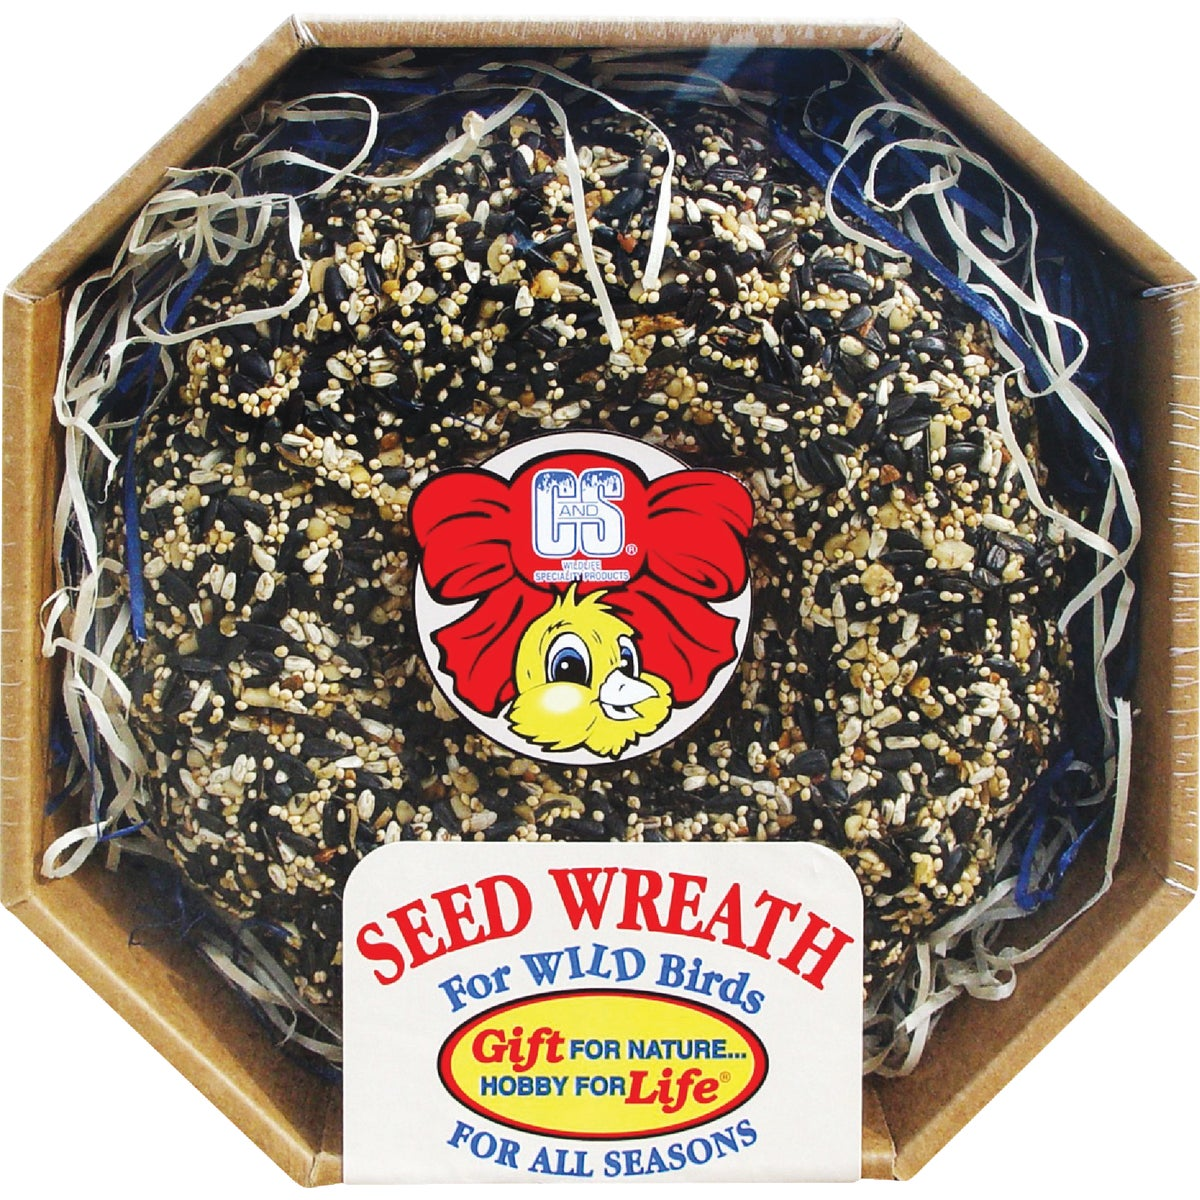 2.6LB SEED WREATH - 249 by C & S Products Inc